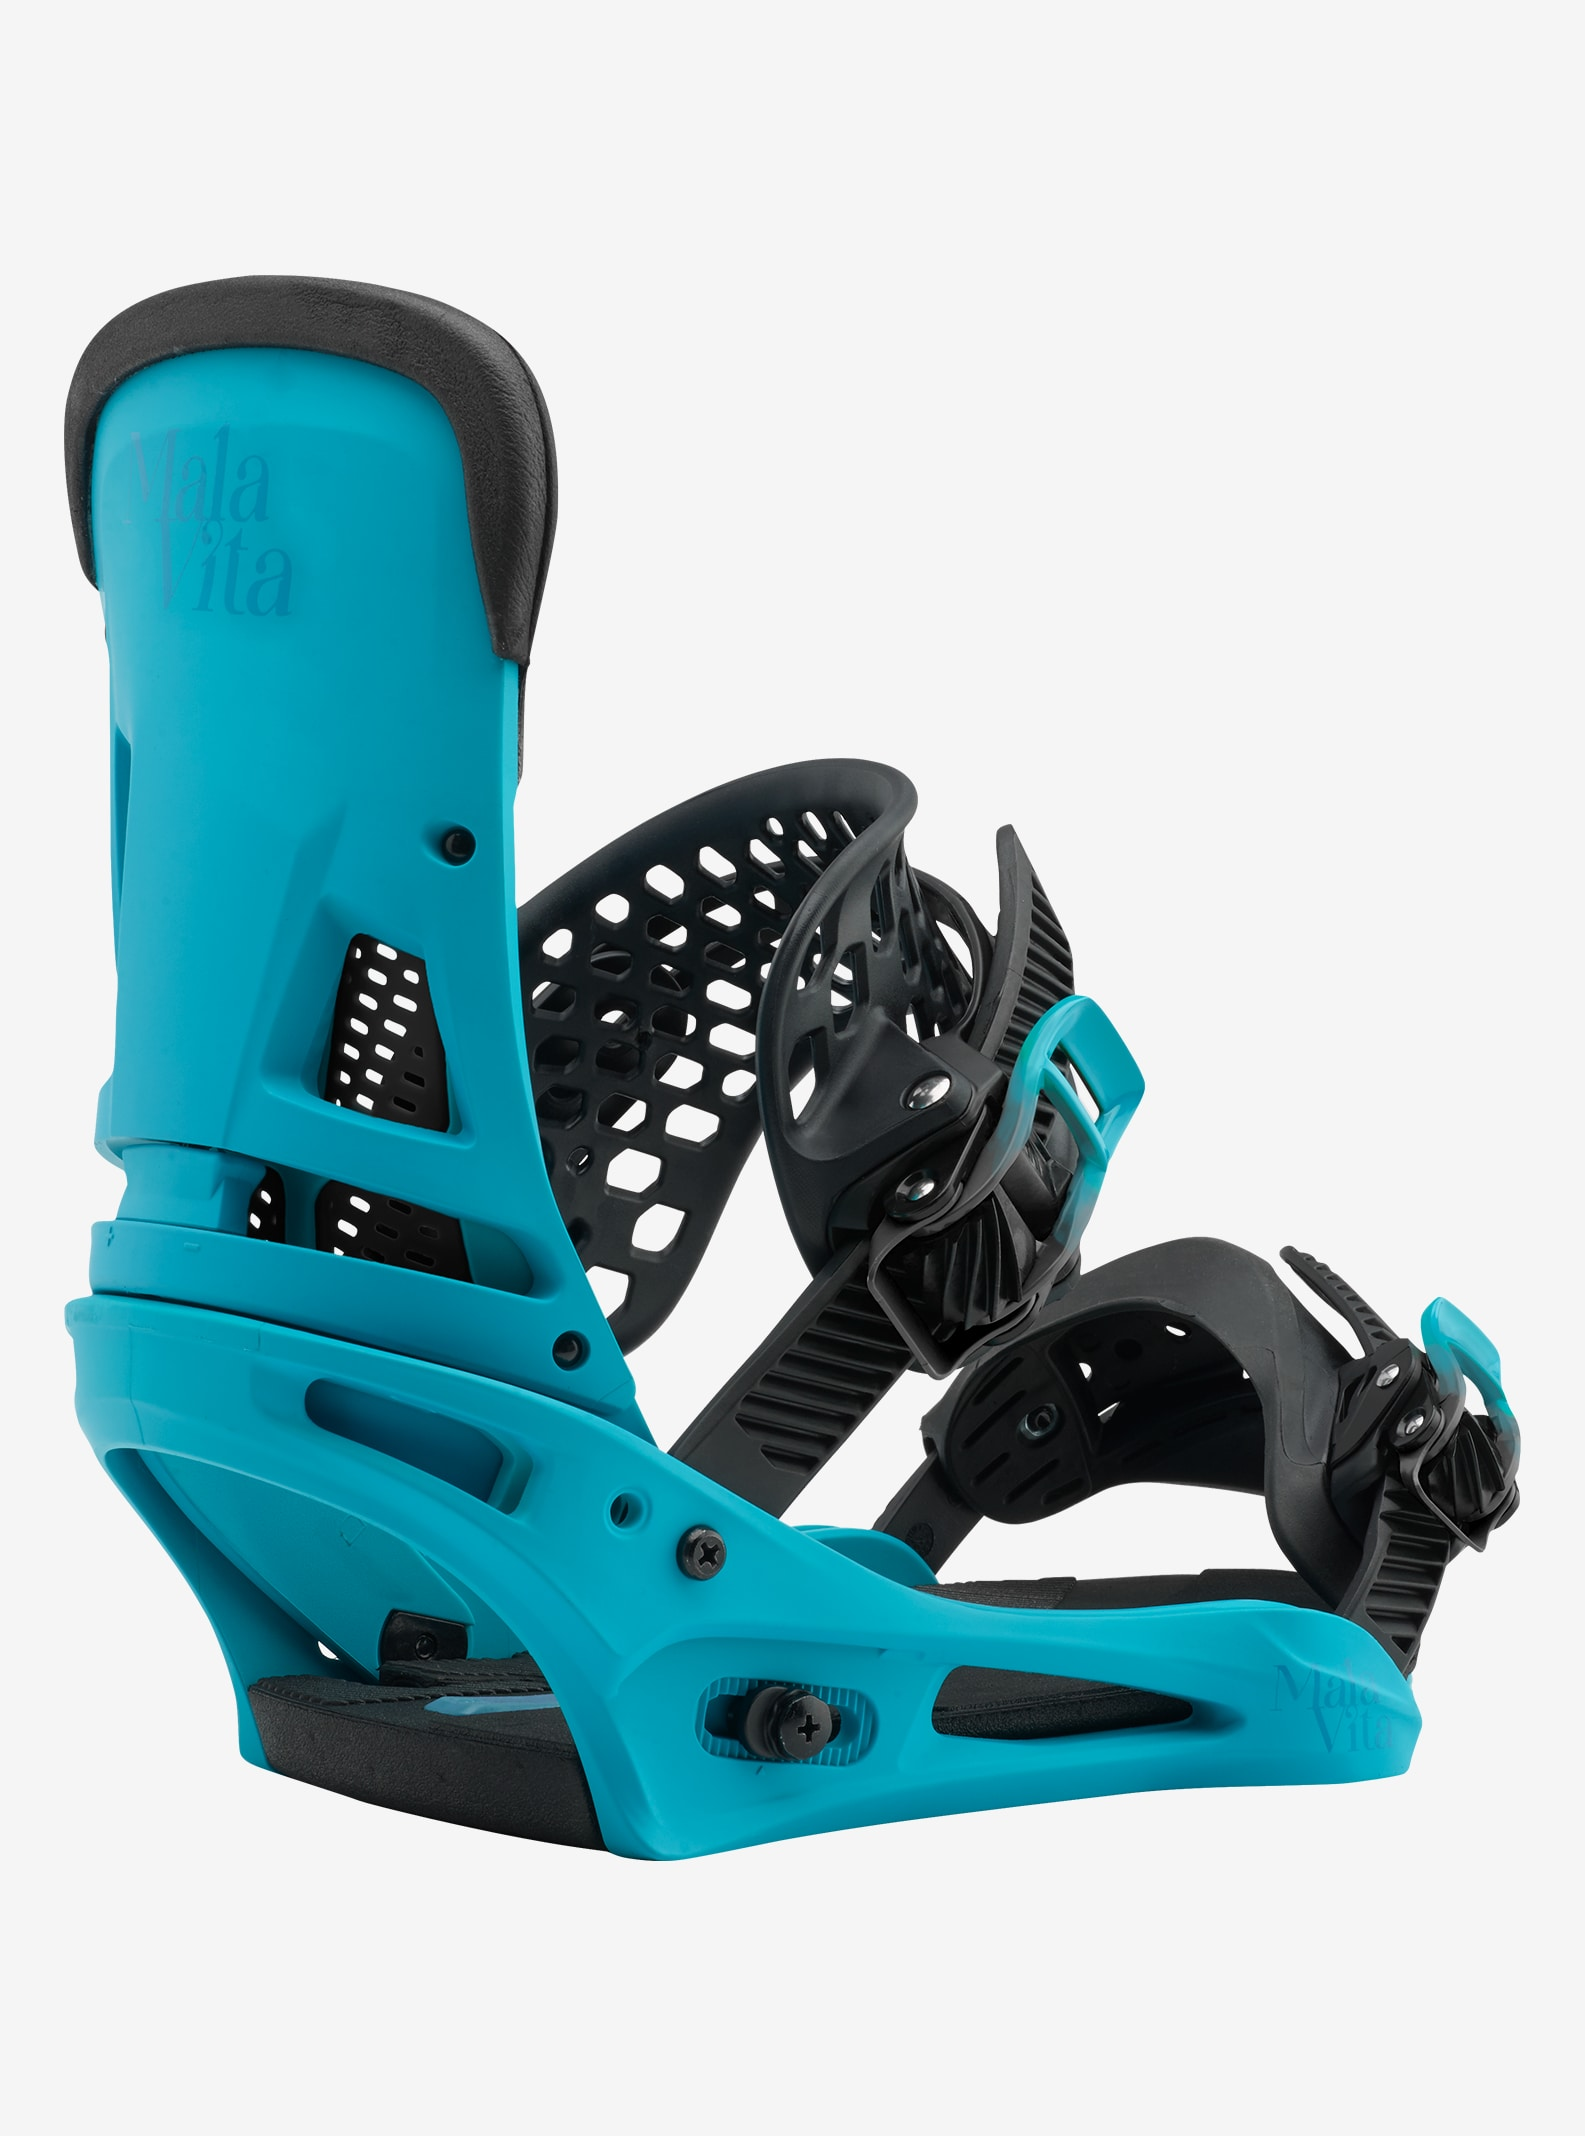 Men's Burton Malavita Snowboard Binding shown in Tealest